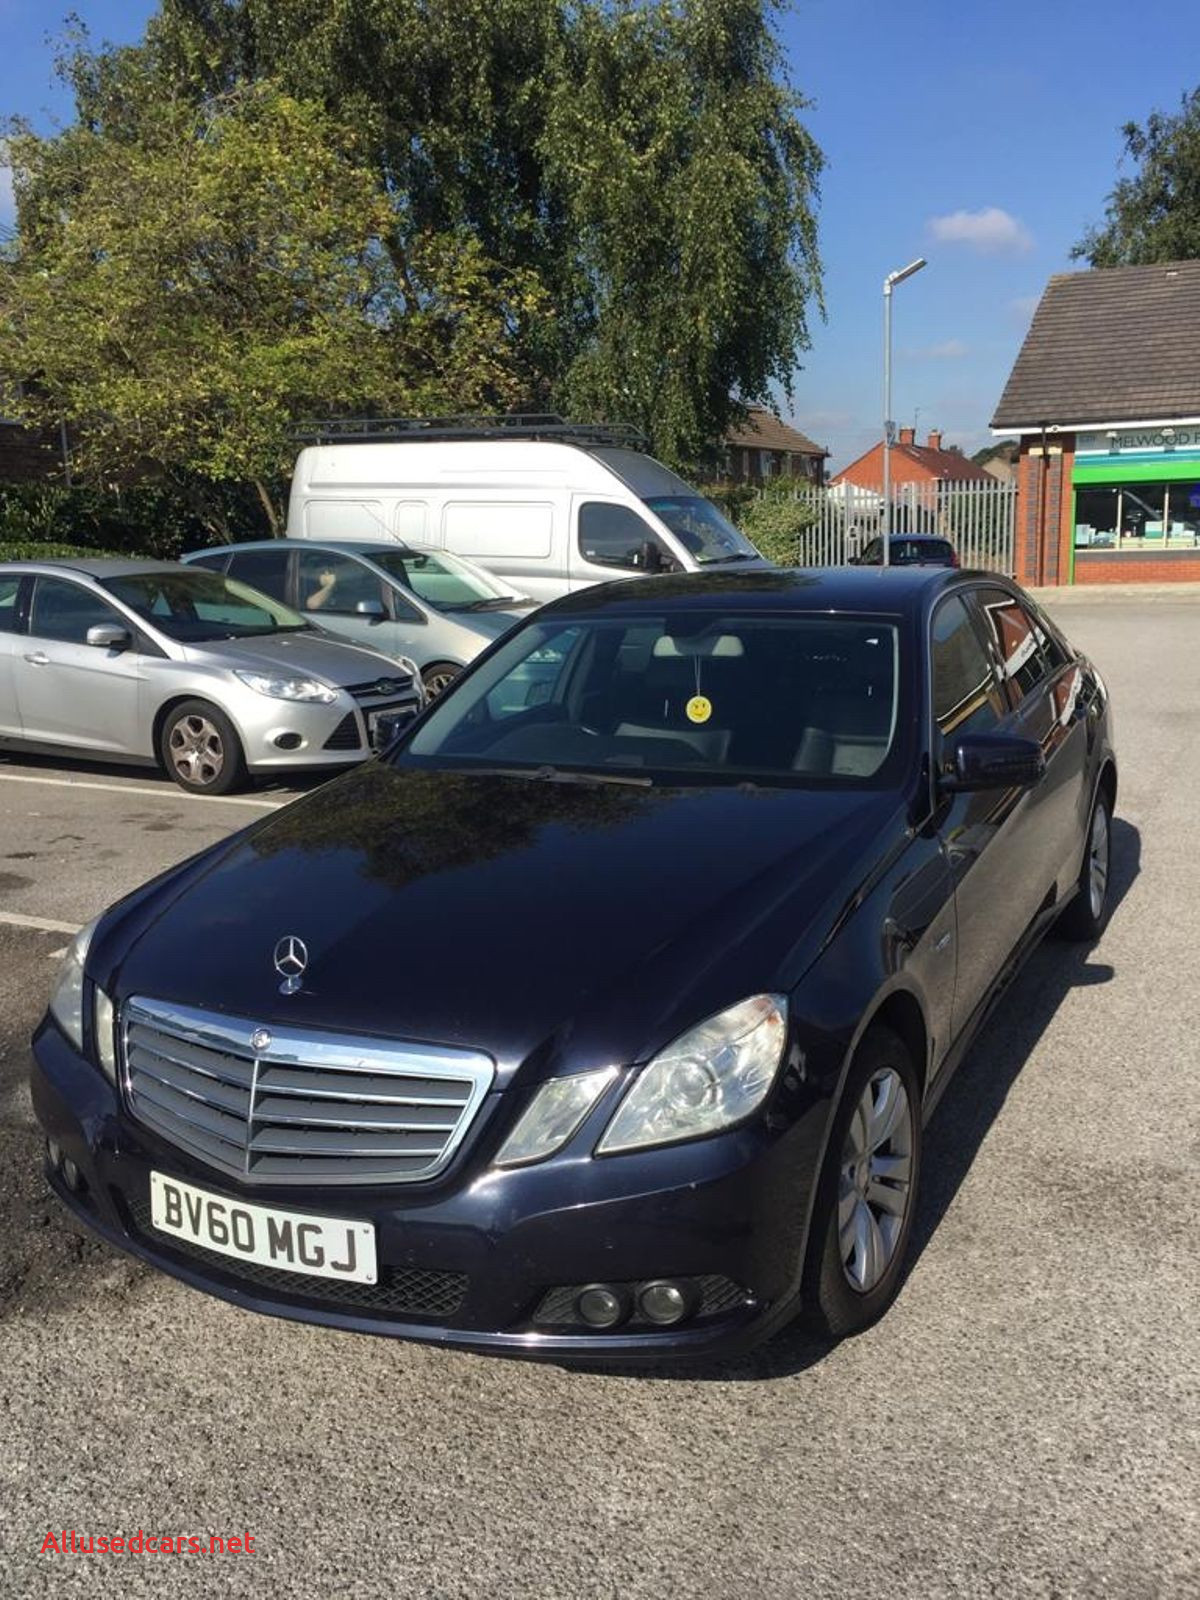 Mercedes Benz E 350 Luxury Mercedes Benz E 220cdi In L12 Liverpool for £3 600 00 for